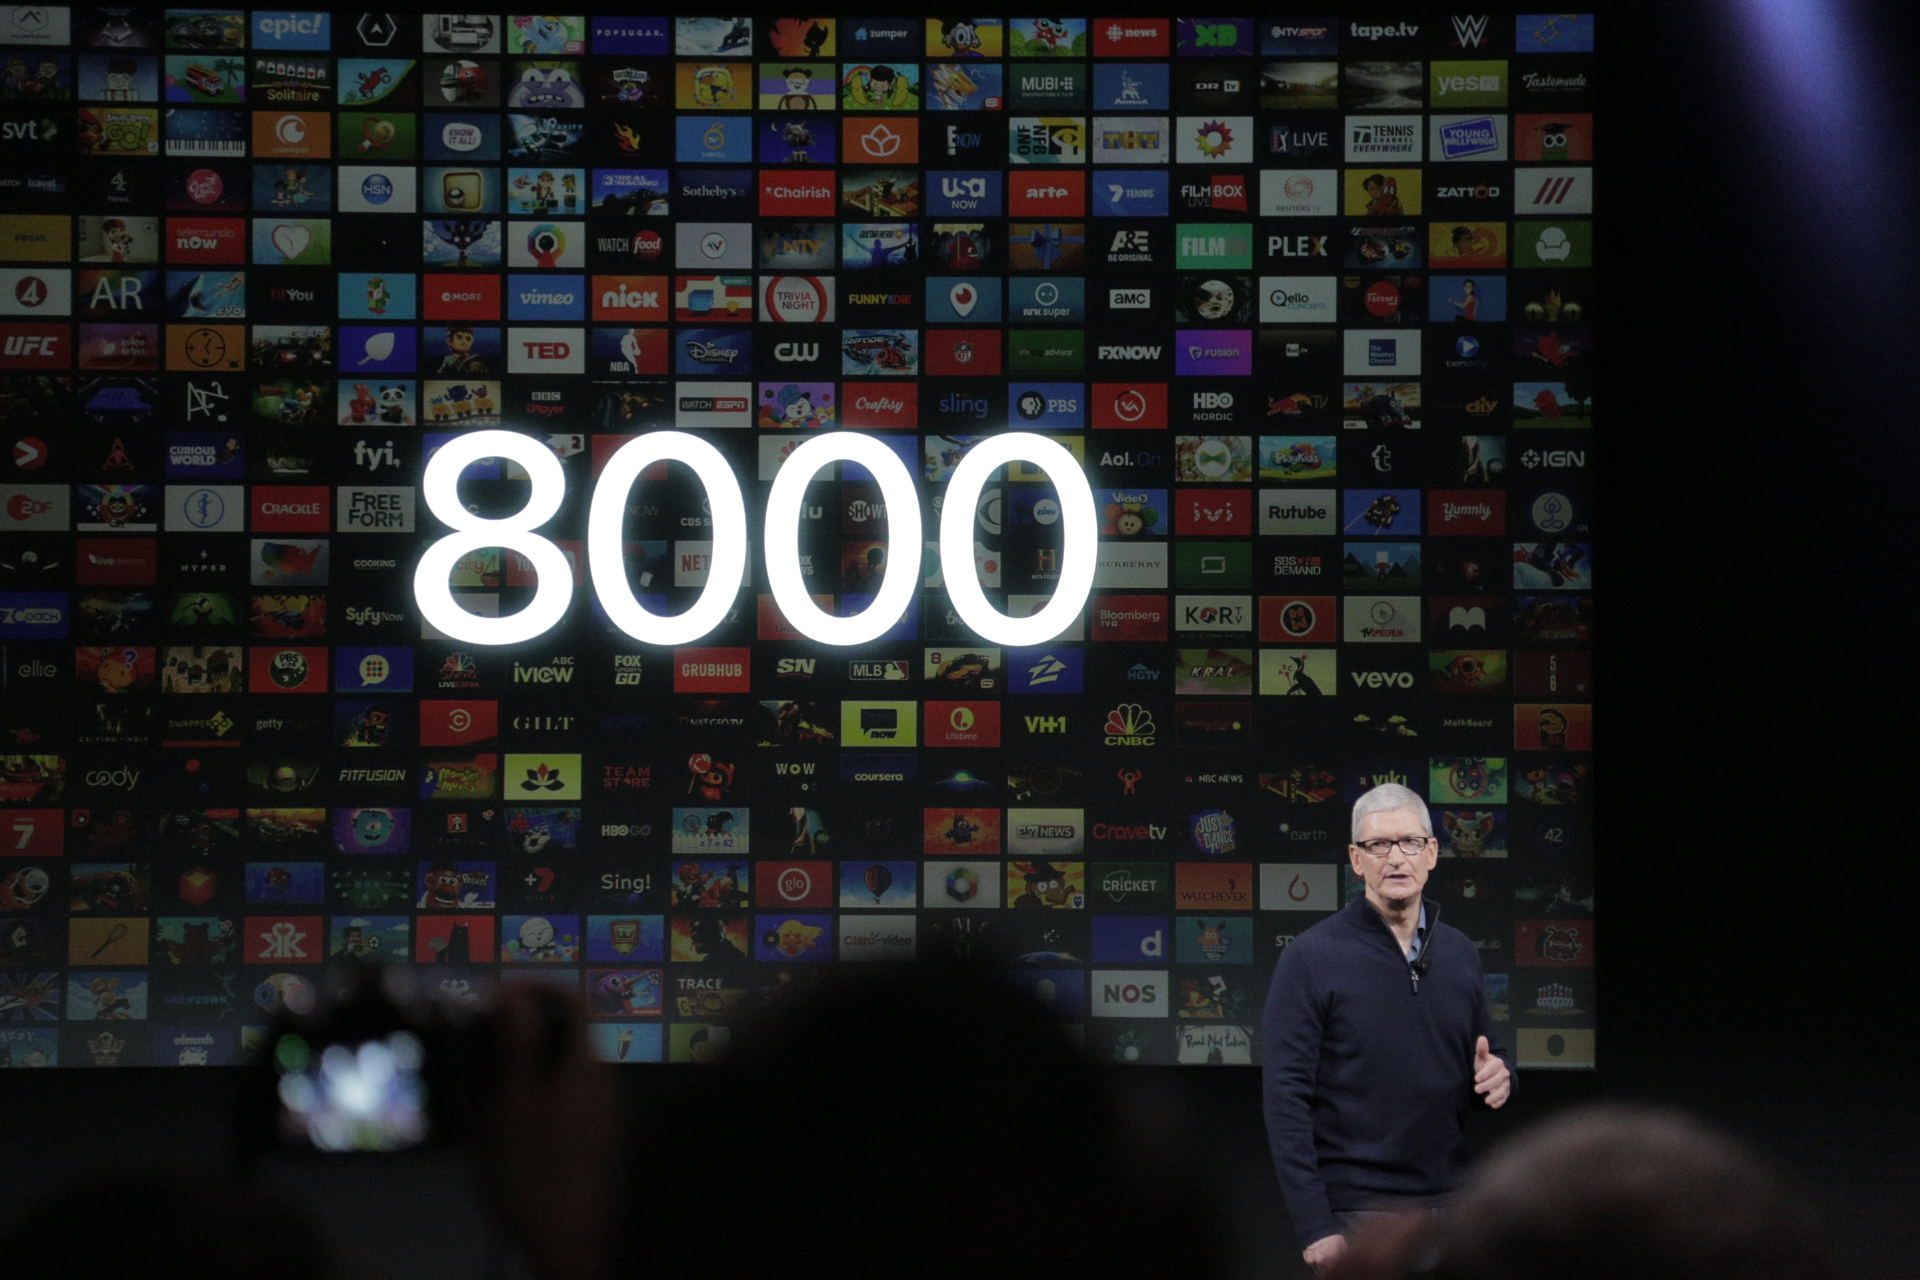 Apple TV App Store has 8,000 apps, 2,000 of which are games